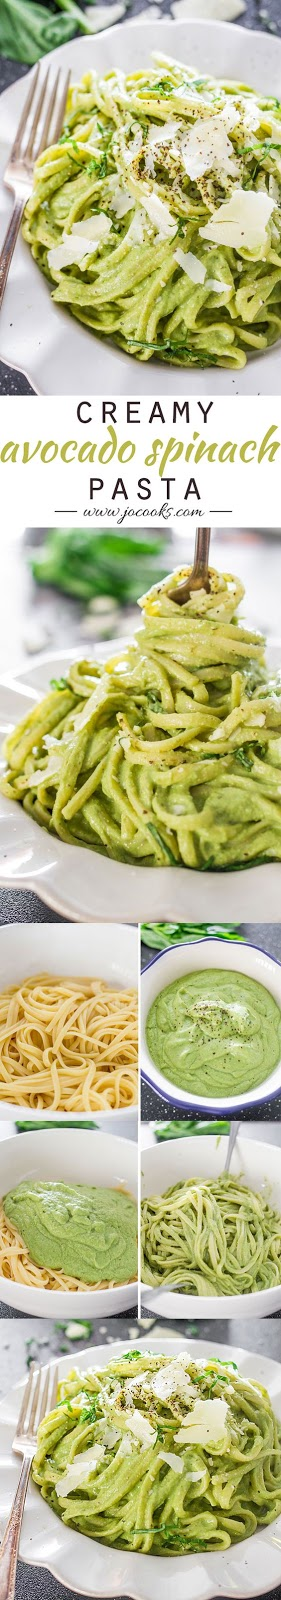 Creamy Avocado Spinach